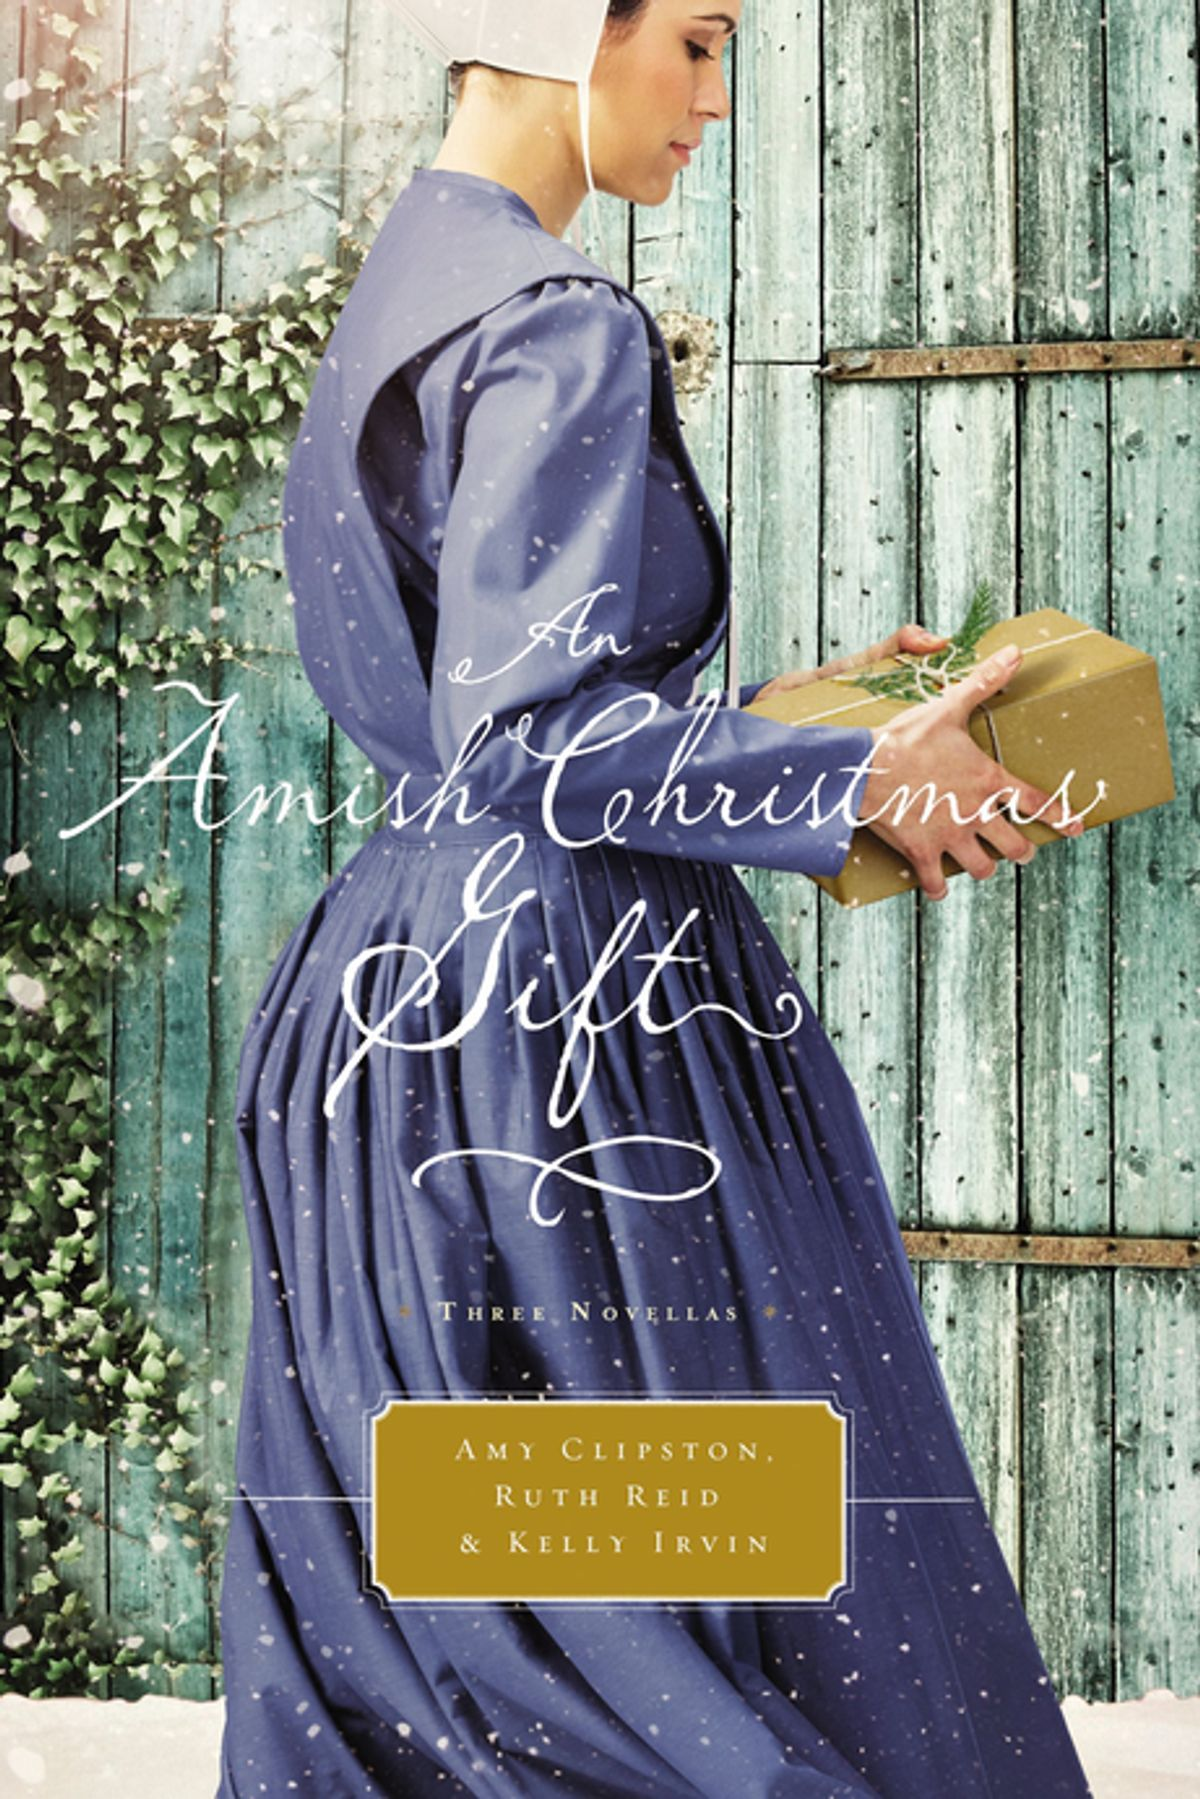 An Amish Christmas Gift by Amy Clipston, Ruth Reid, Kelly Irvin, ISBN: 9780718039660